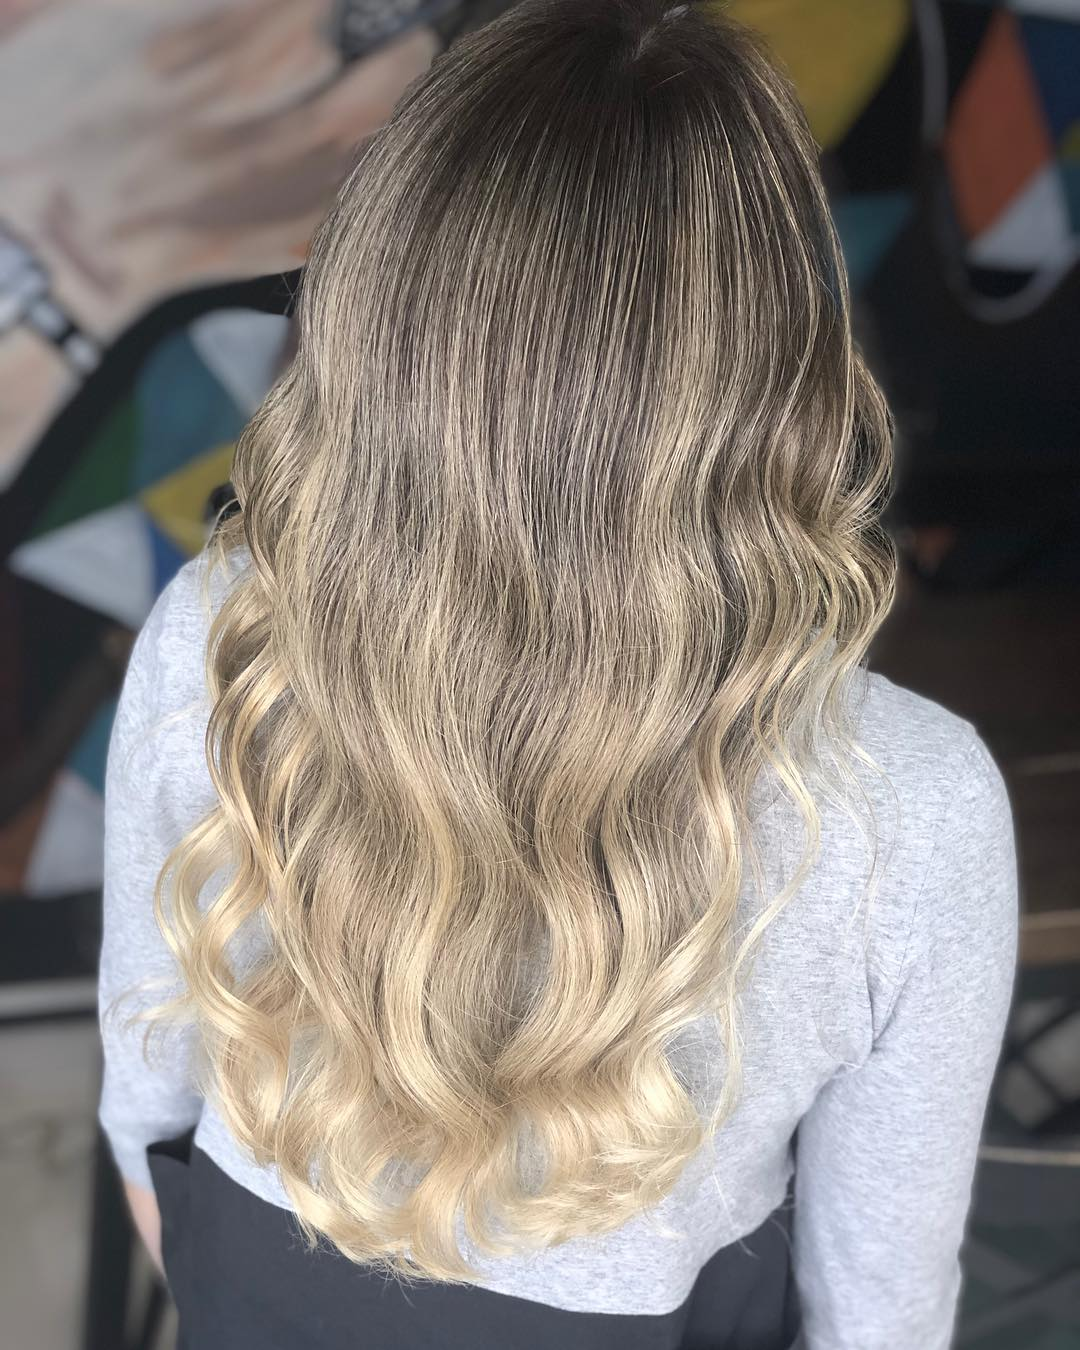 1.Dirty Blonde Curly 3